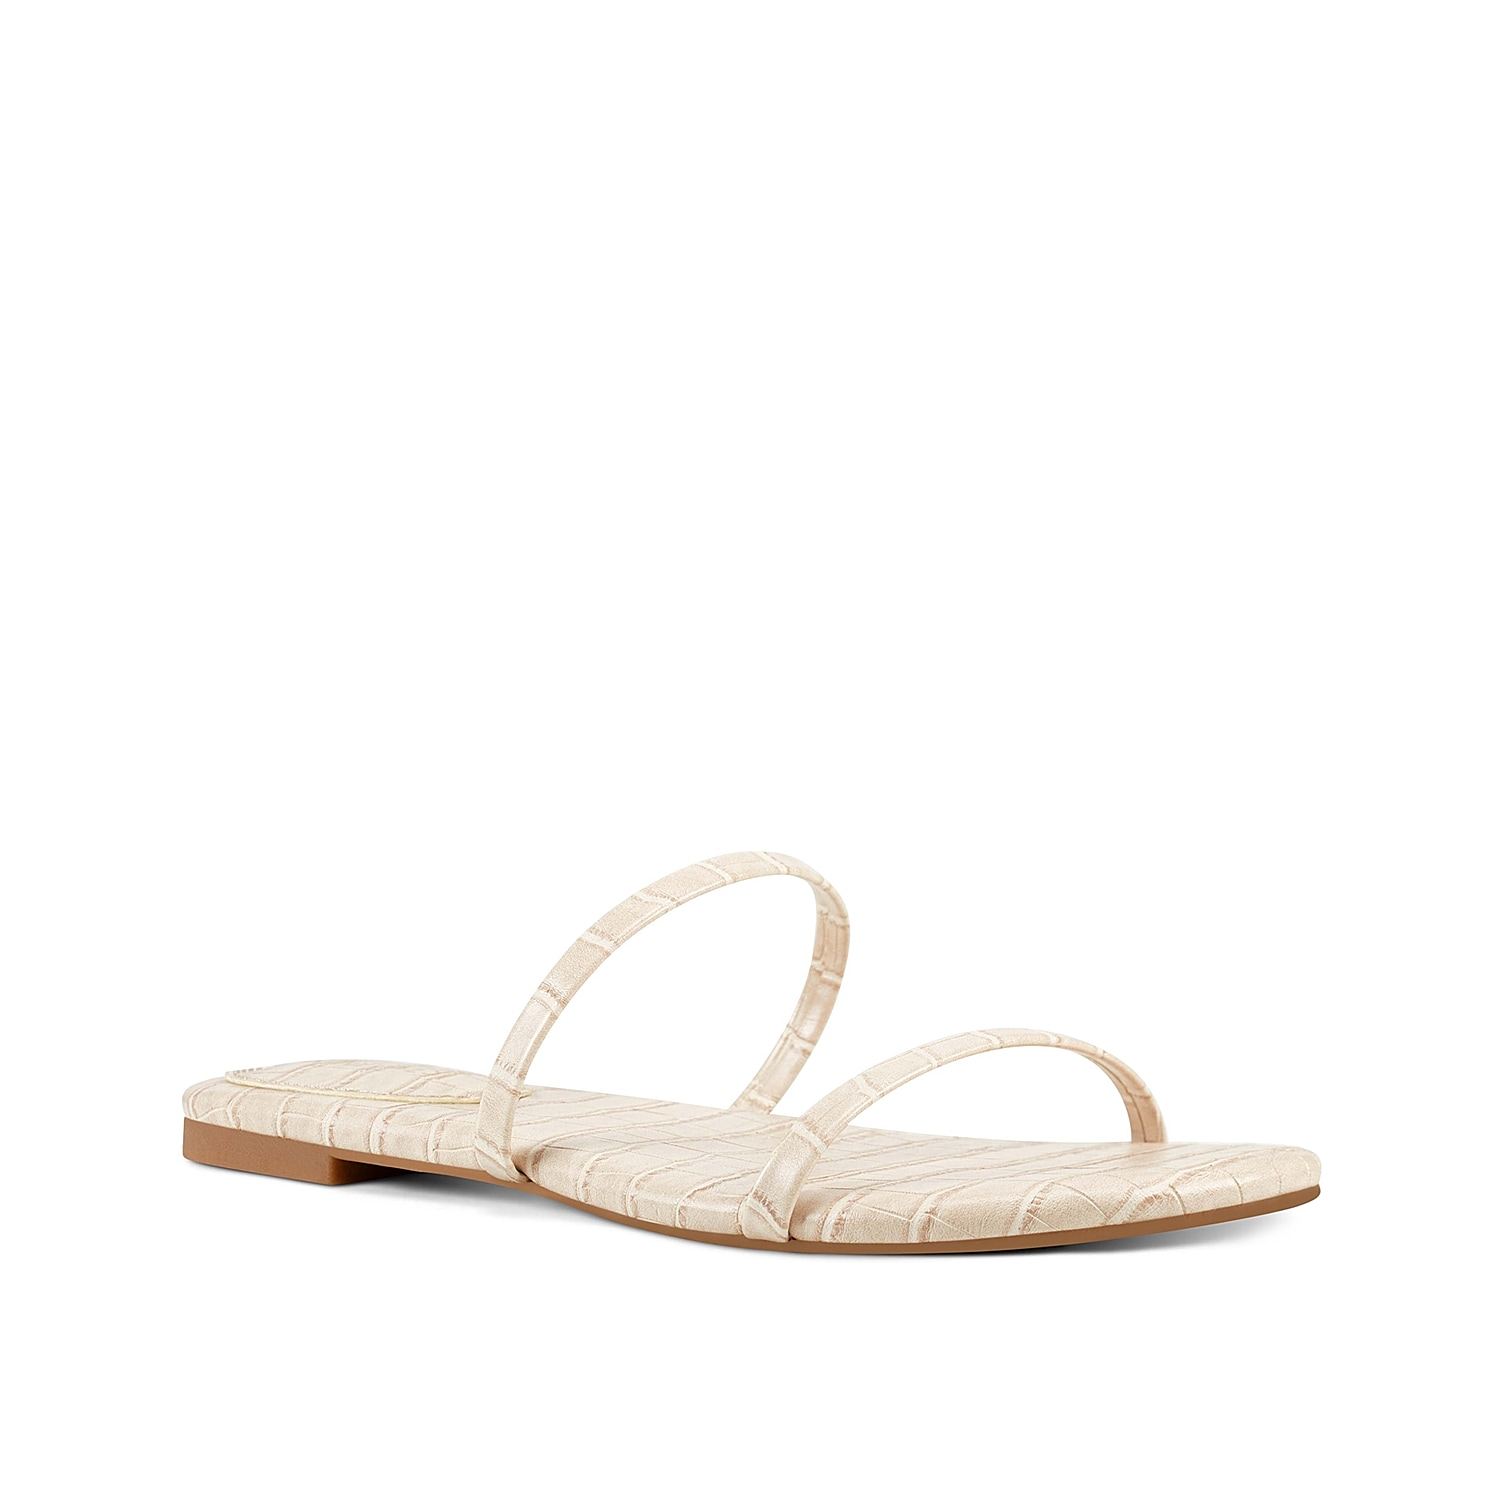 Keep up with your cutesy style with the Blaise sandal from Nine West. This silhouette is fashioned with dual thin straps and a textural croc print for added interest!